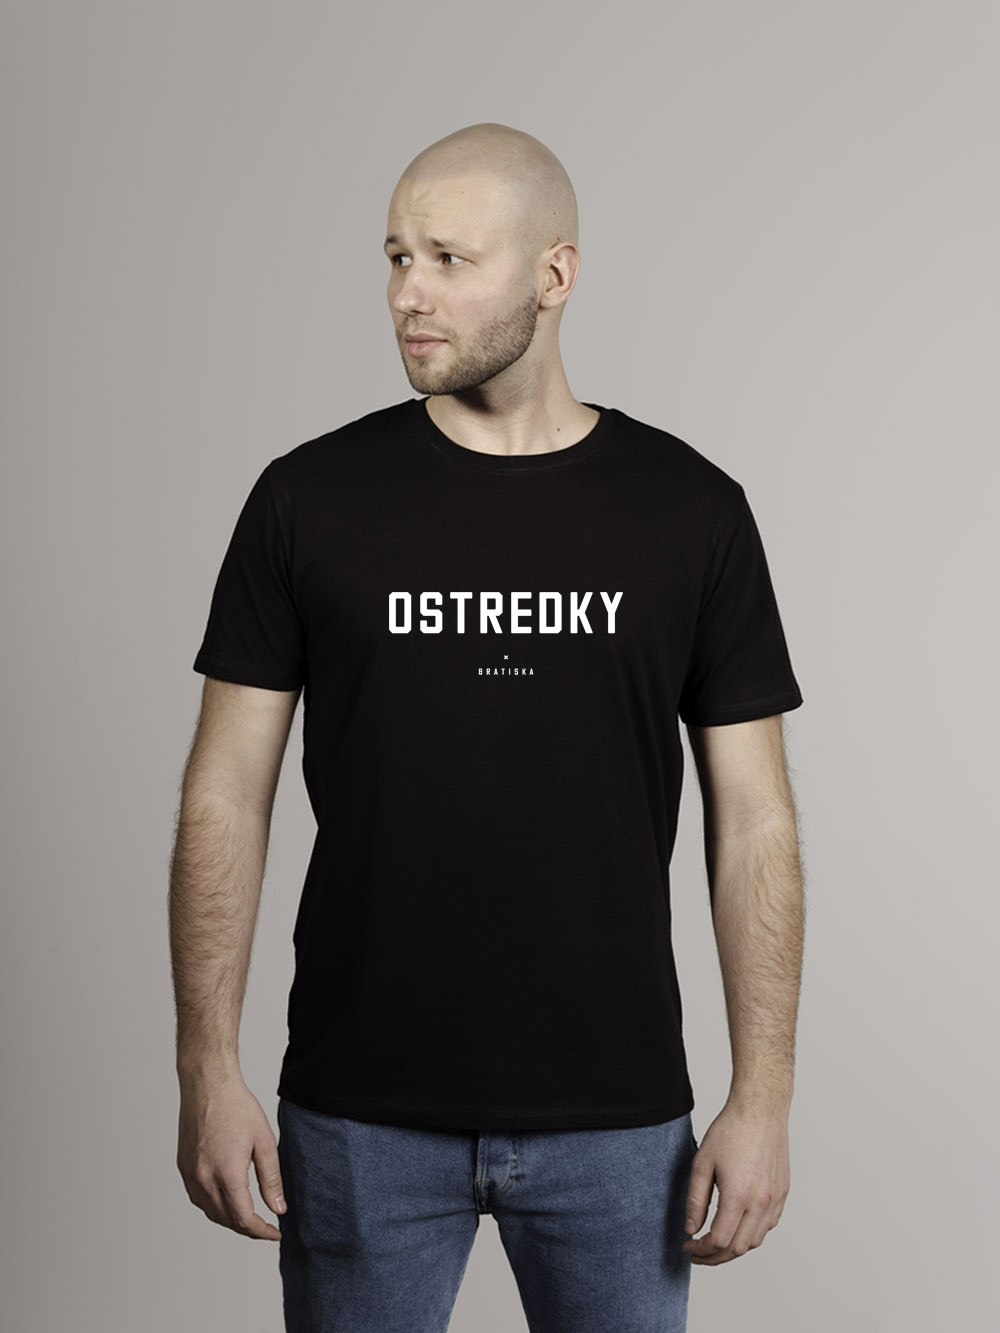 Ostredky